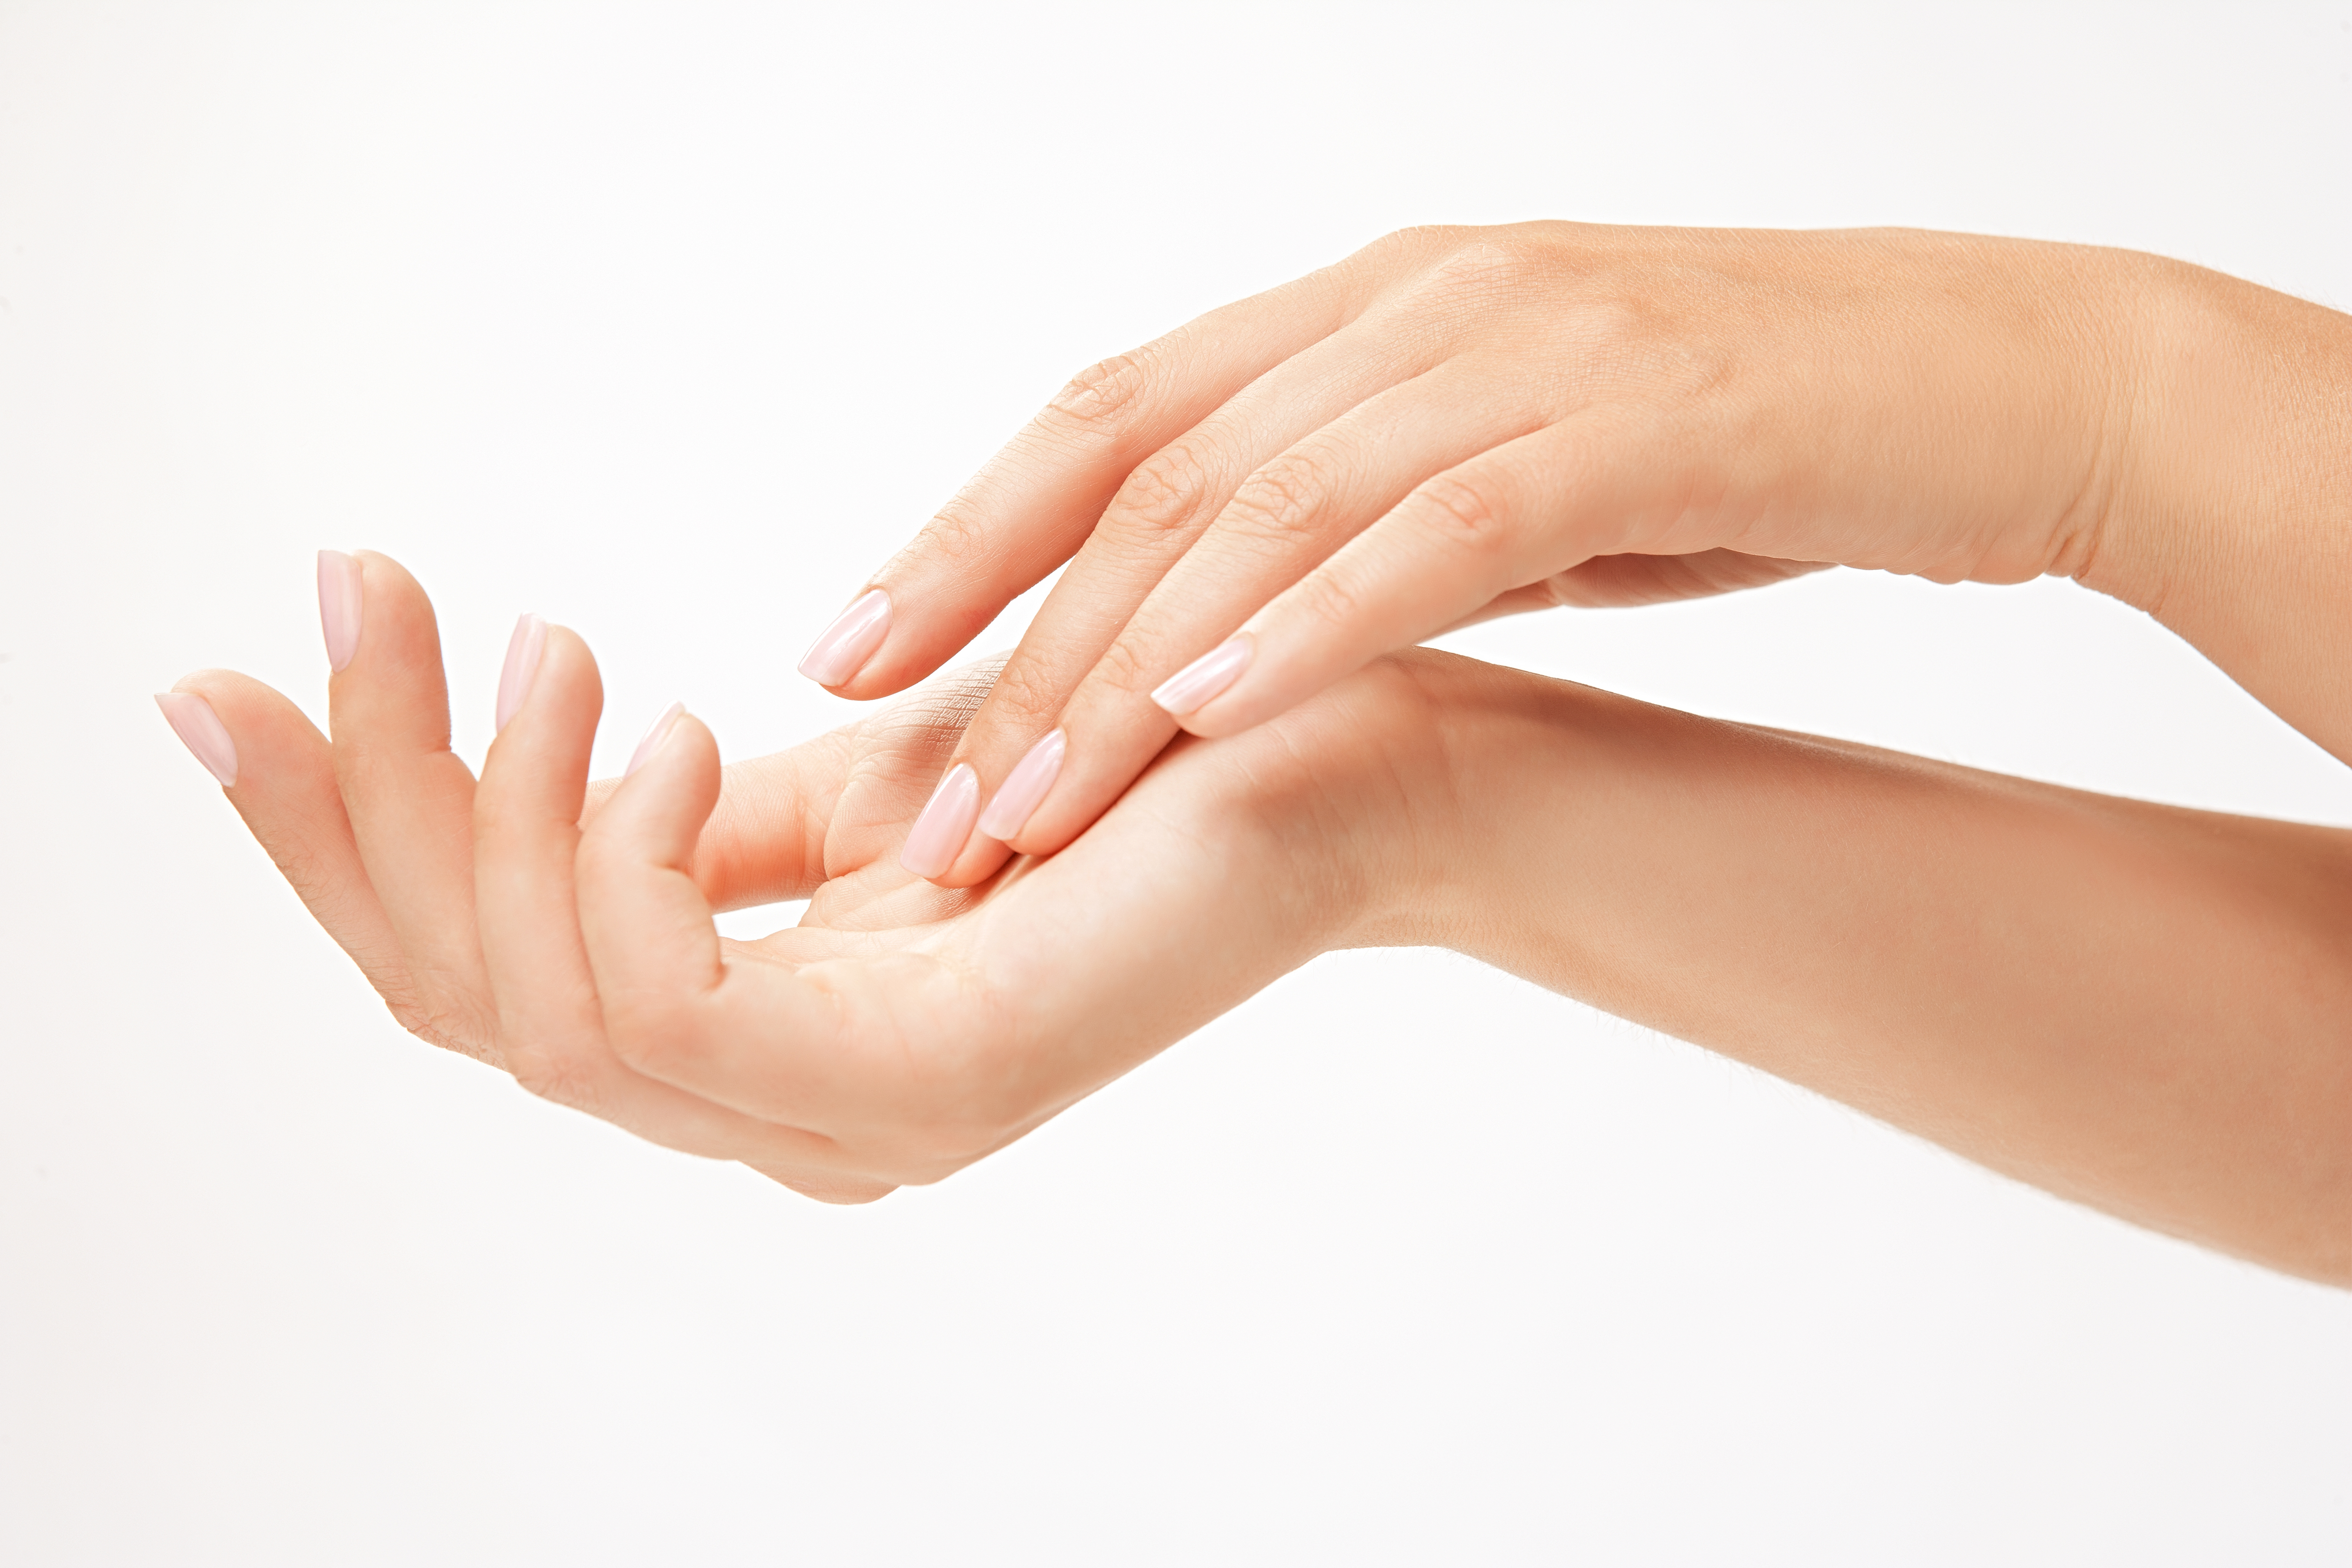 Hand Care; Soaps, Sanitisers and Barrier Creams